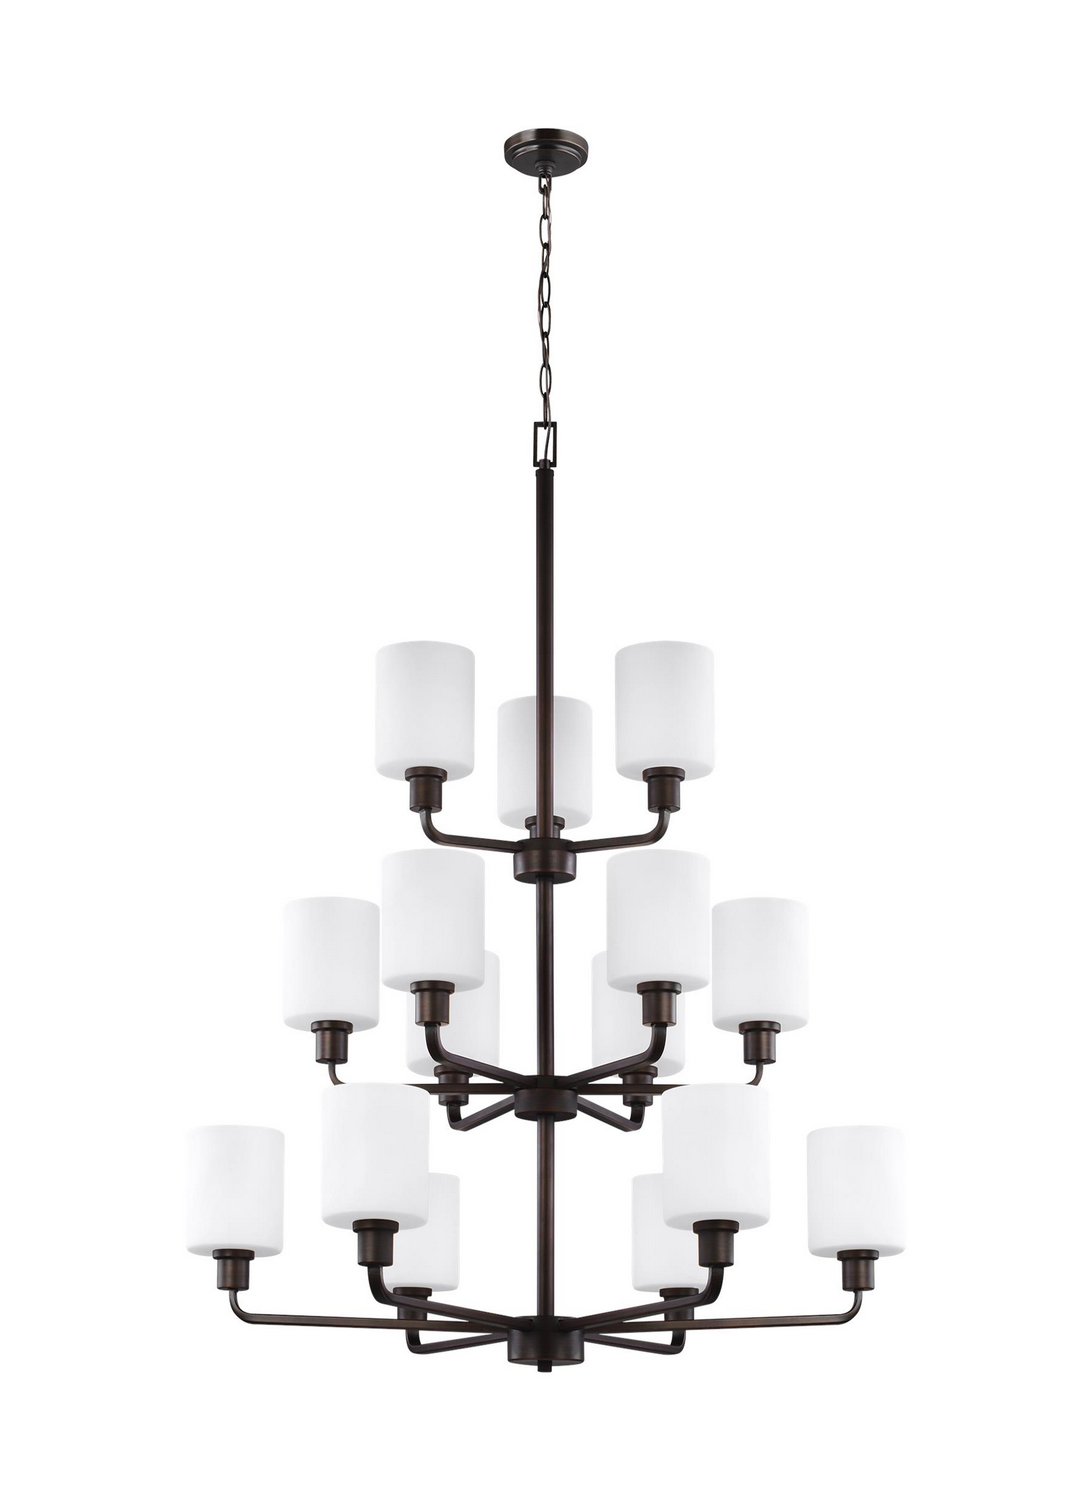 15 Light Chandelier from the Canfield collection by Seagull 3128815EN3 710